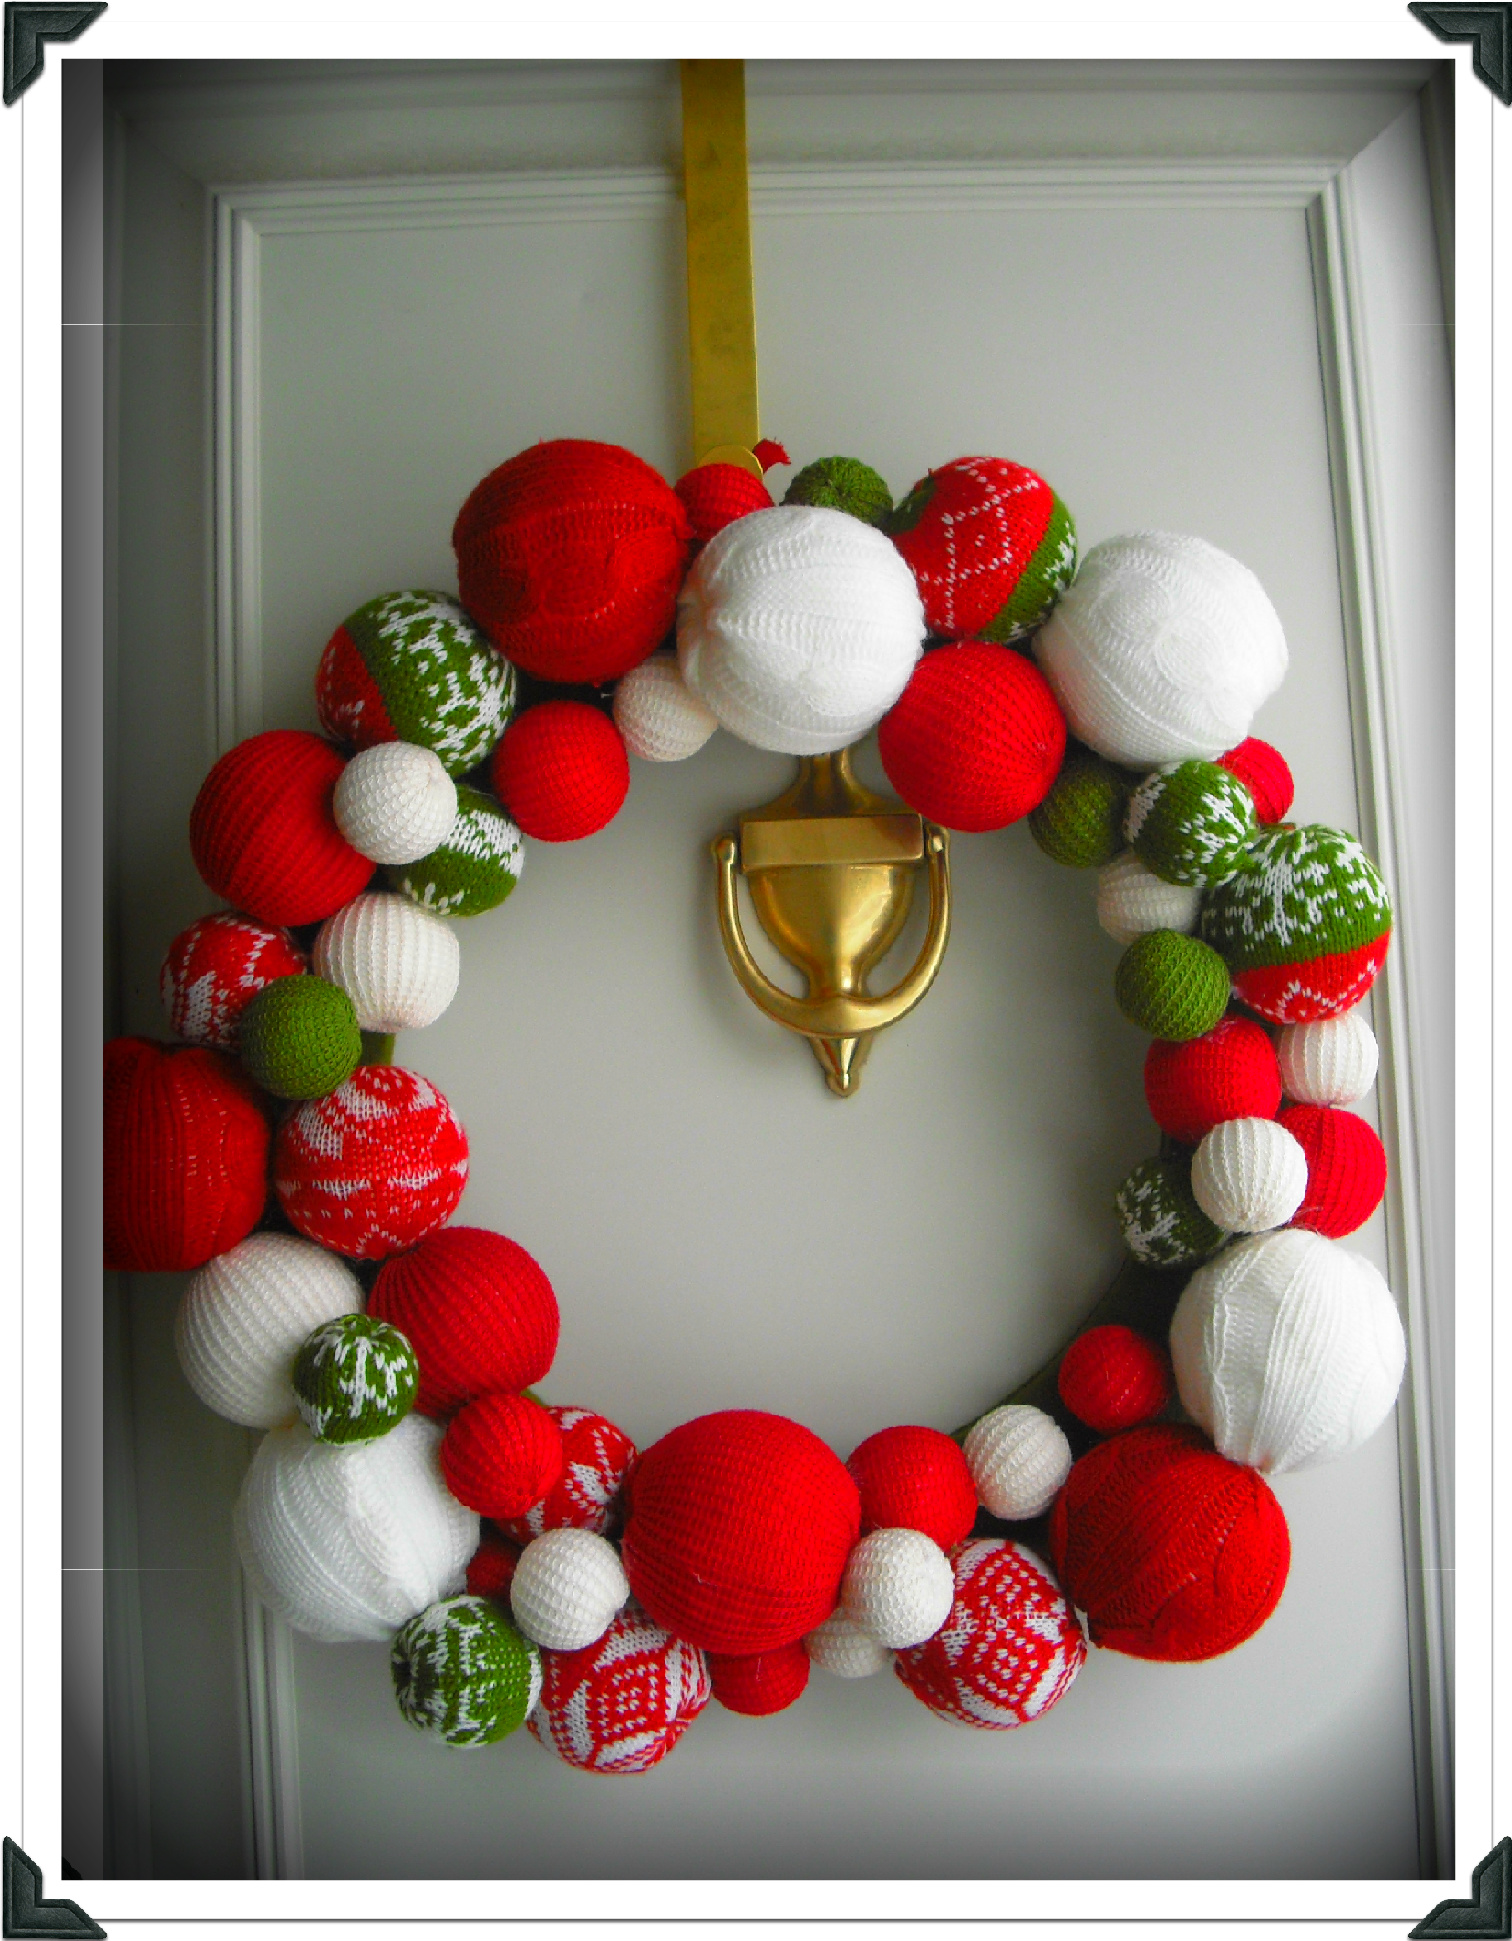 Novembre 2013 julie 39 s closet for Decoration de porte